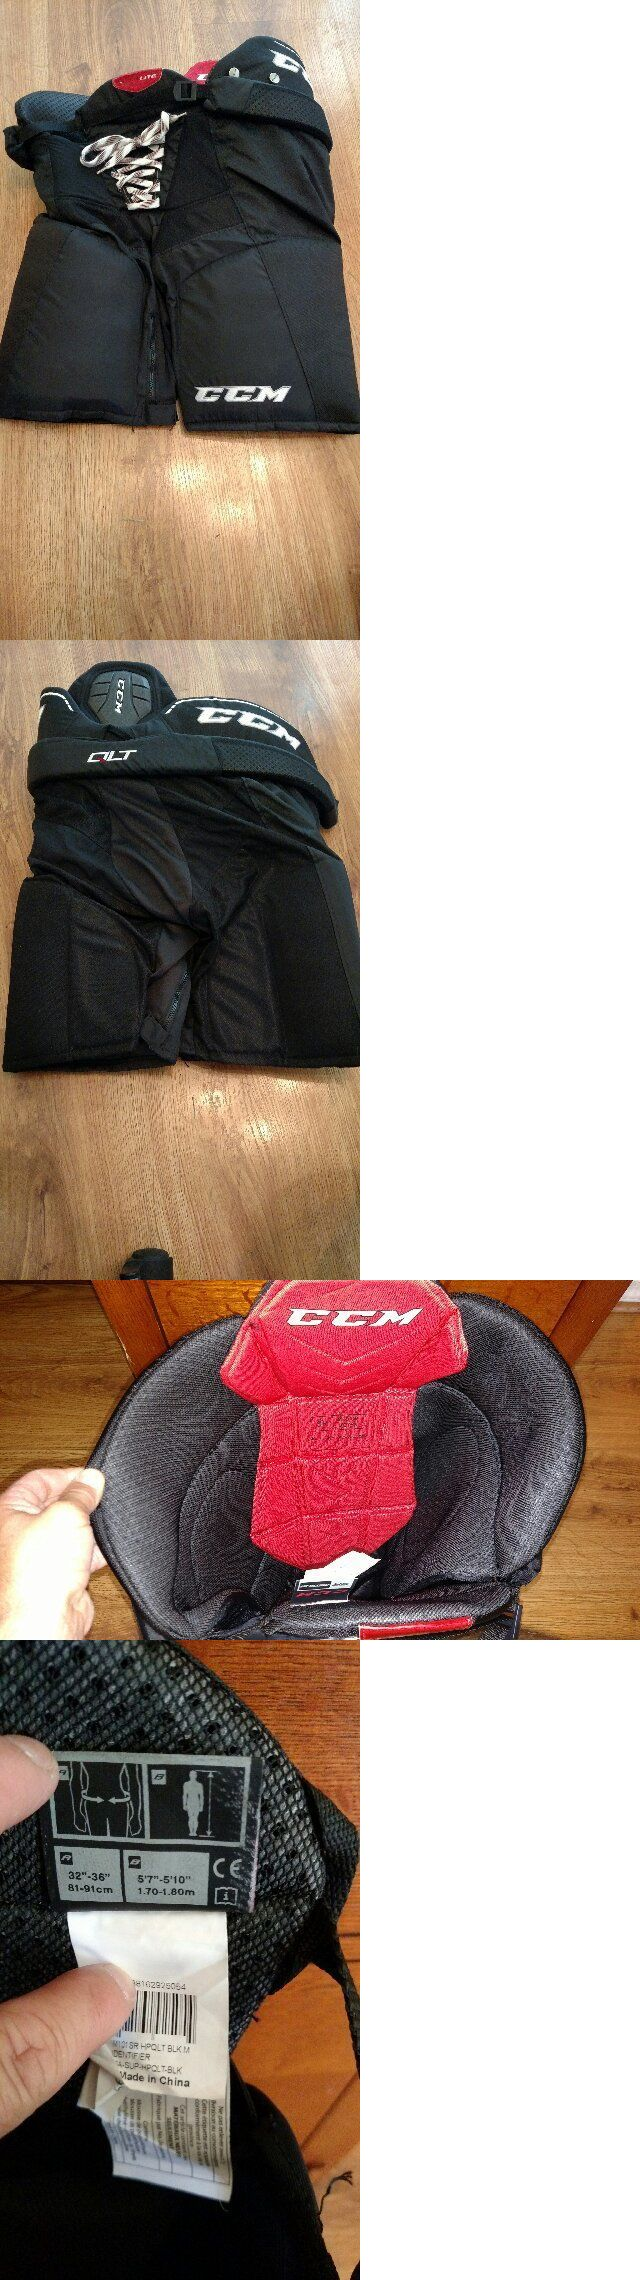 Other Hockey Protective Gear 79767: Hockey Pants - Sr - Ccm Hp Qlt - New Condition -> BUY IT NOW ONLY: $100 on eBay!